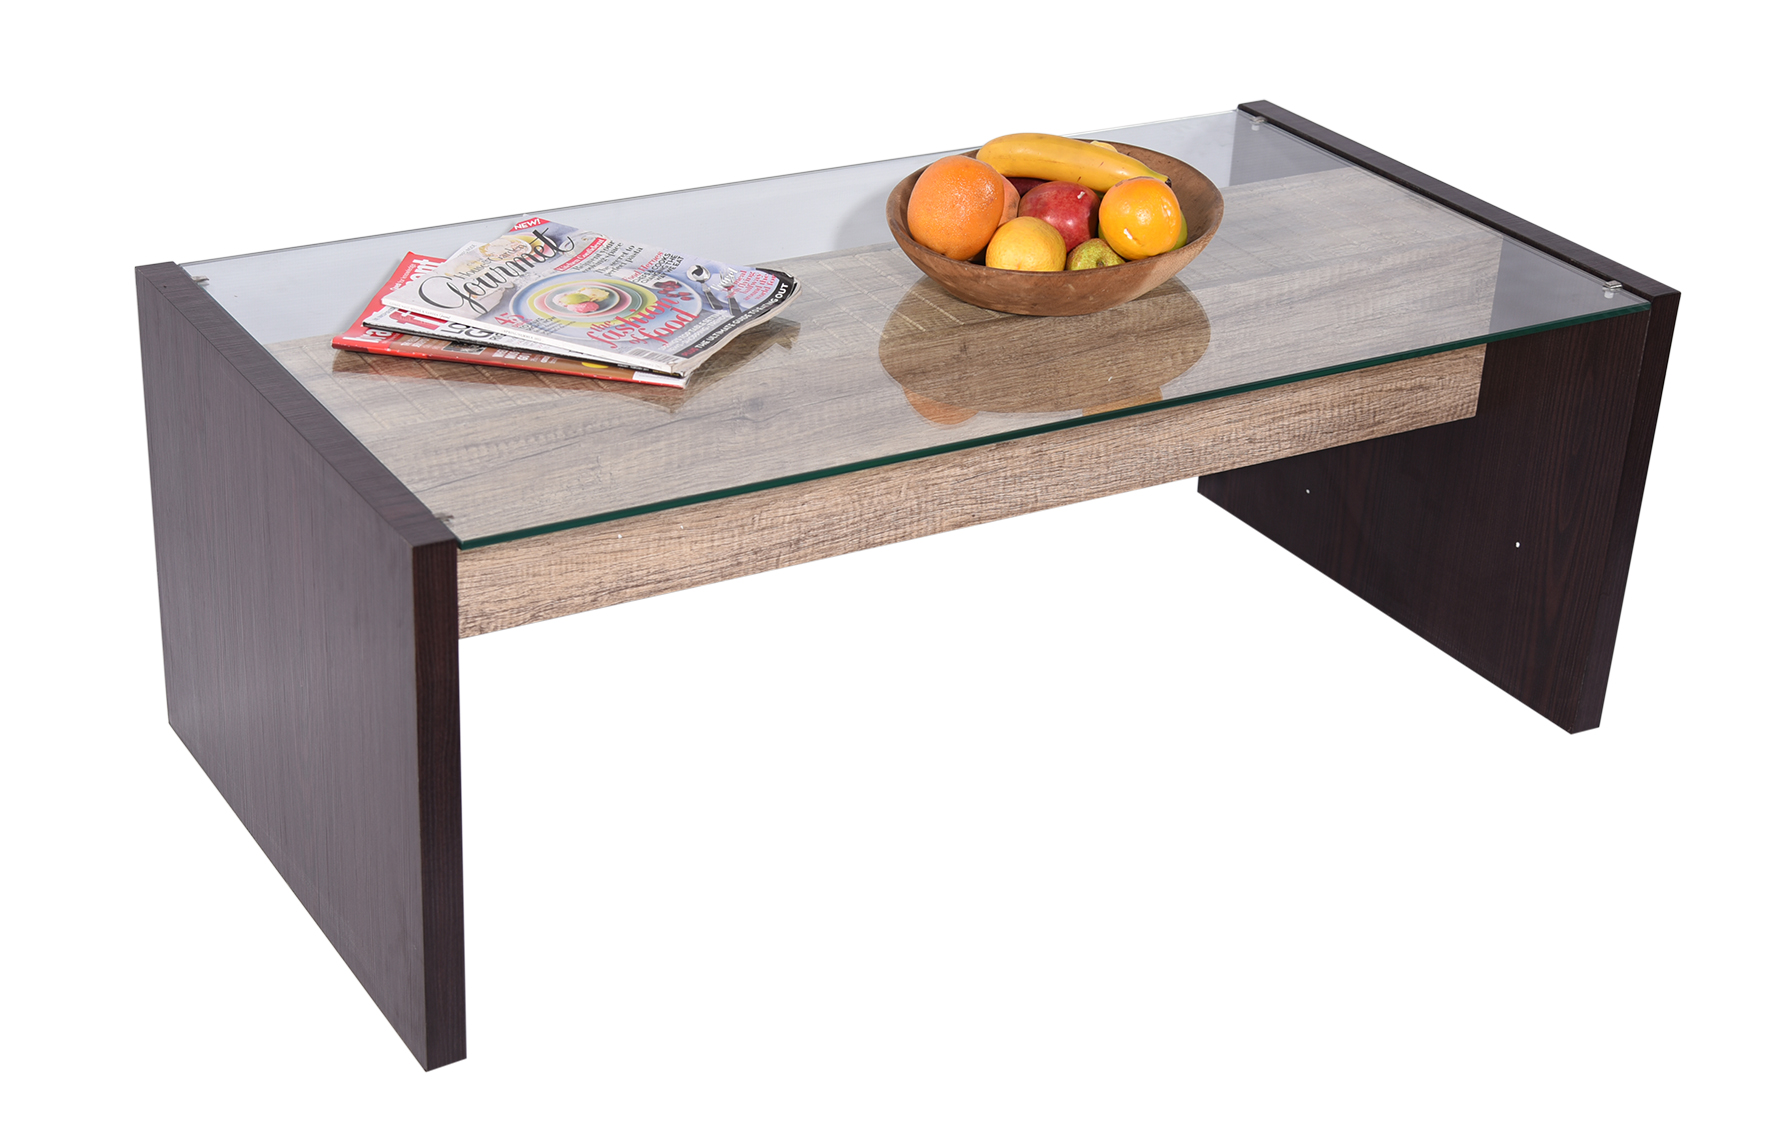 Contempo Coffee Table Discount Decor Cheap Mattresses Affordable Lounge Suites